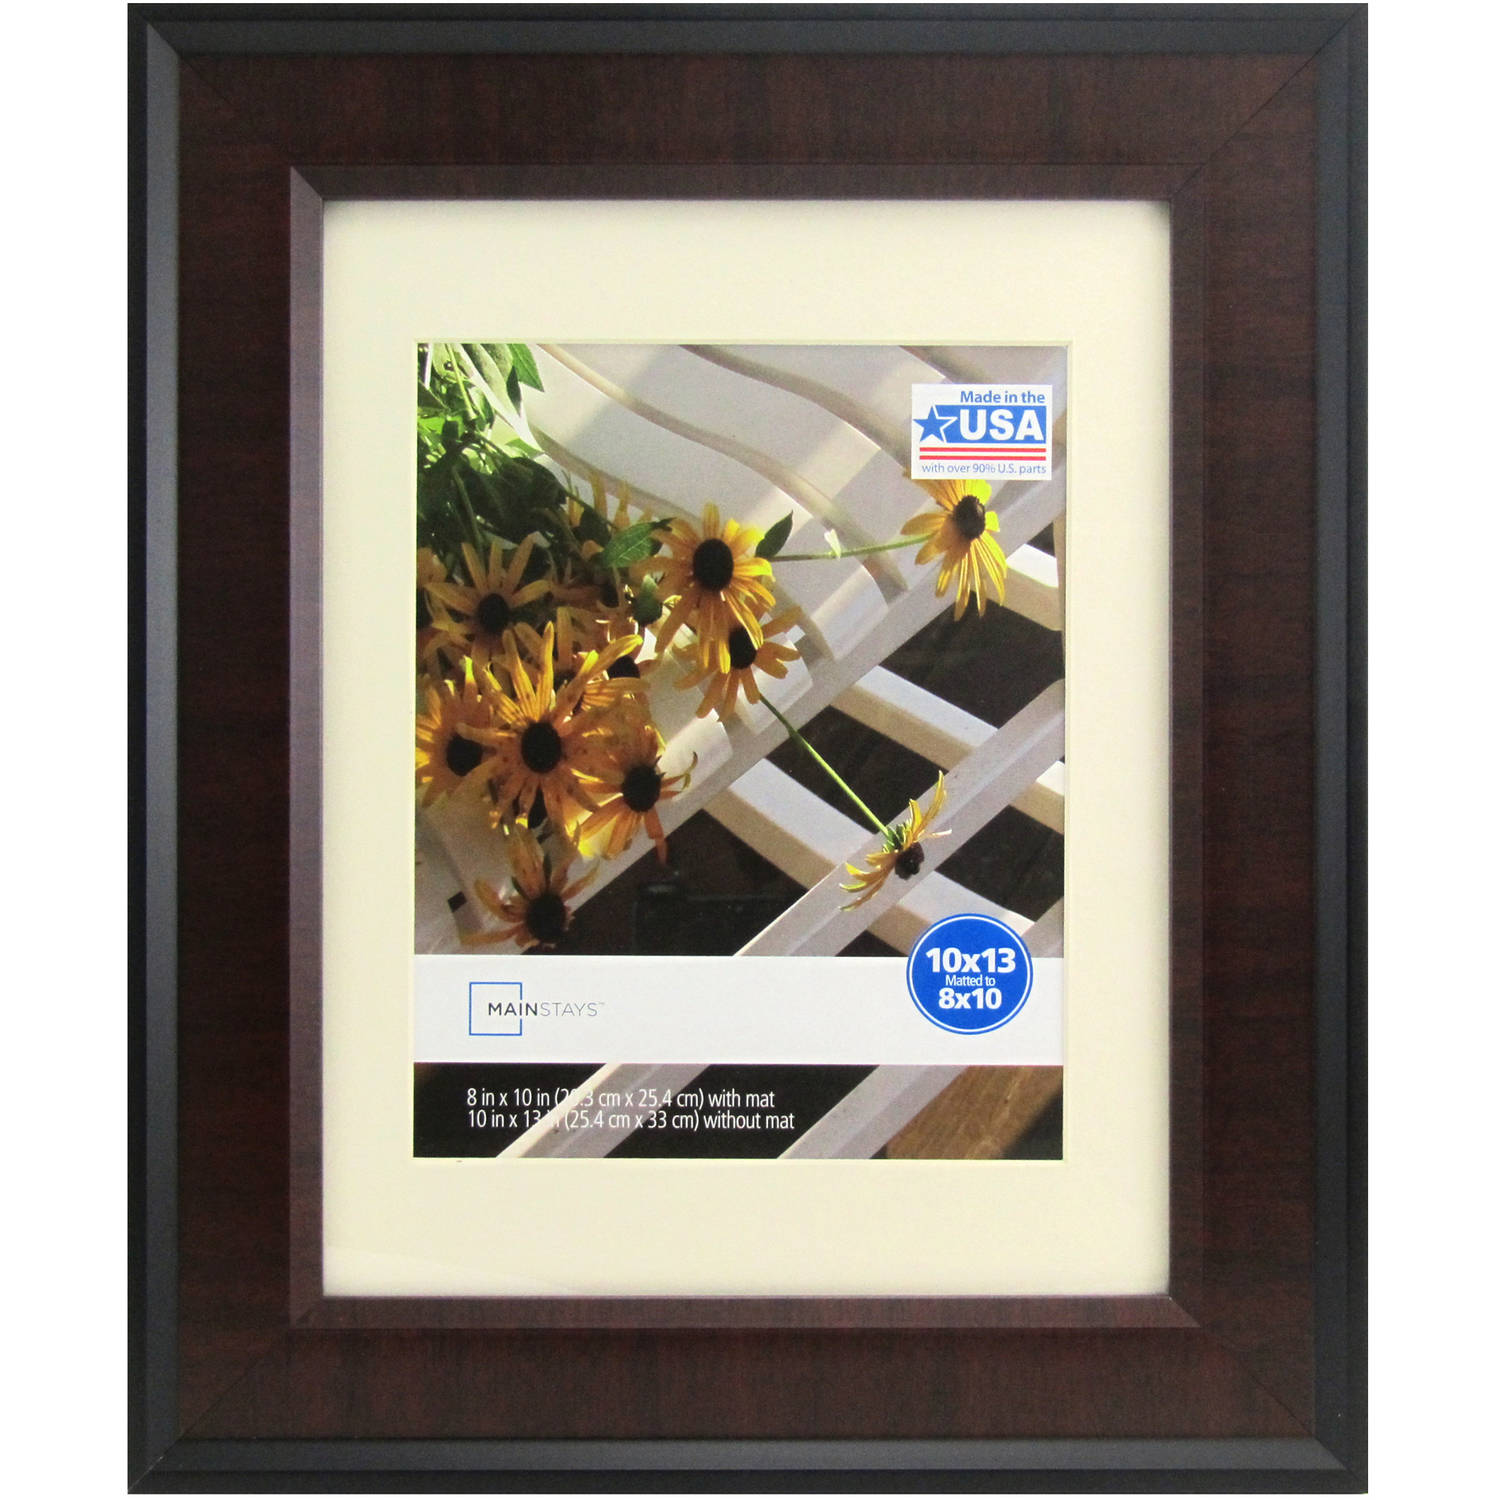 mainstays mai 10x13 frame blackcherry walmartcom